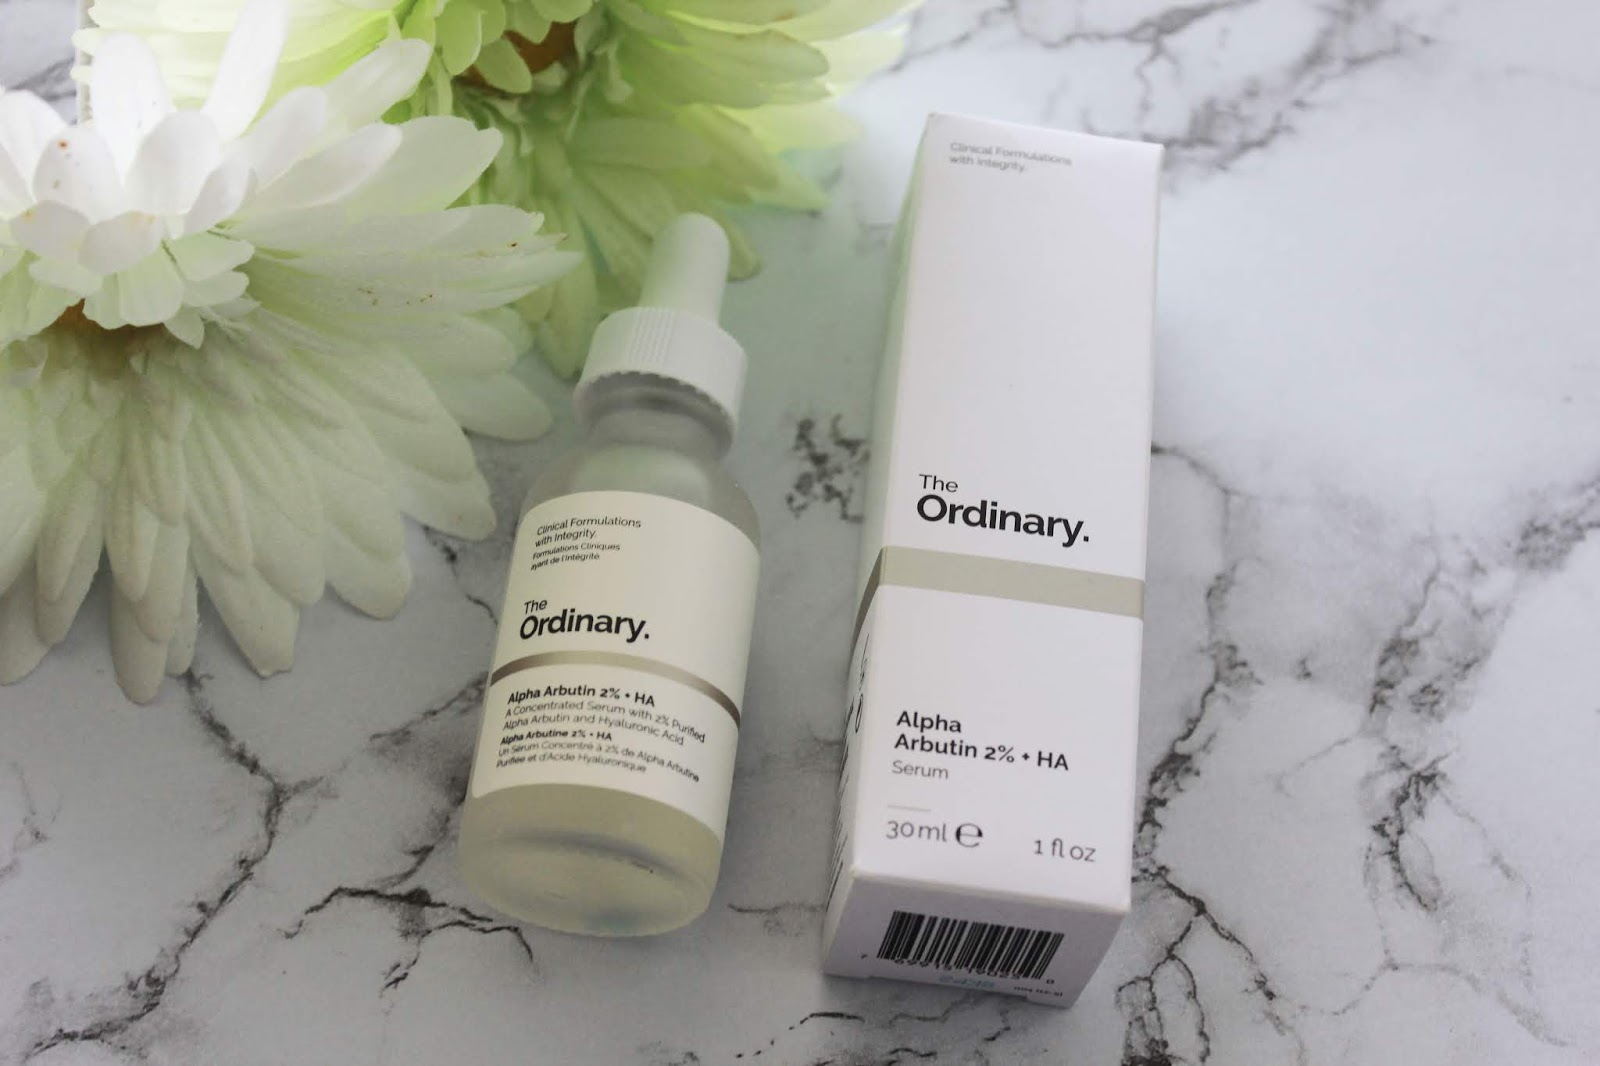 The Ordinary, Alpha Arbutin